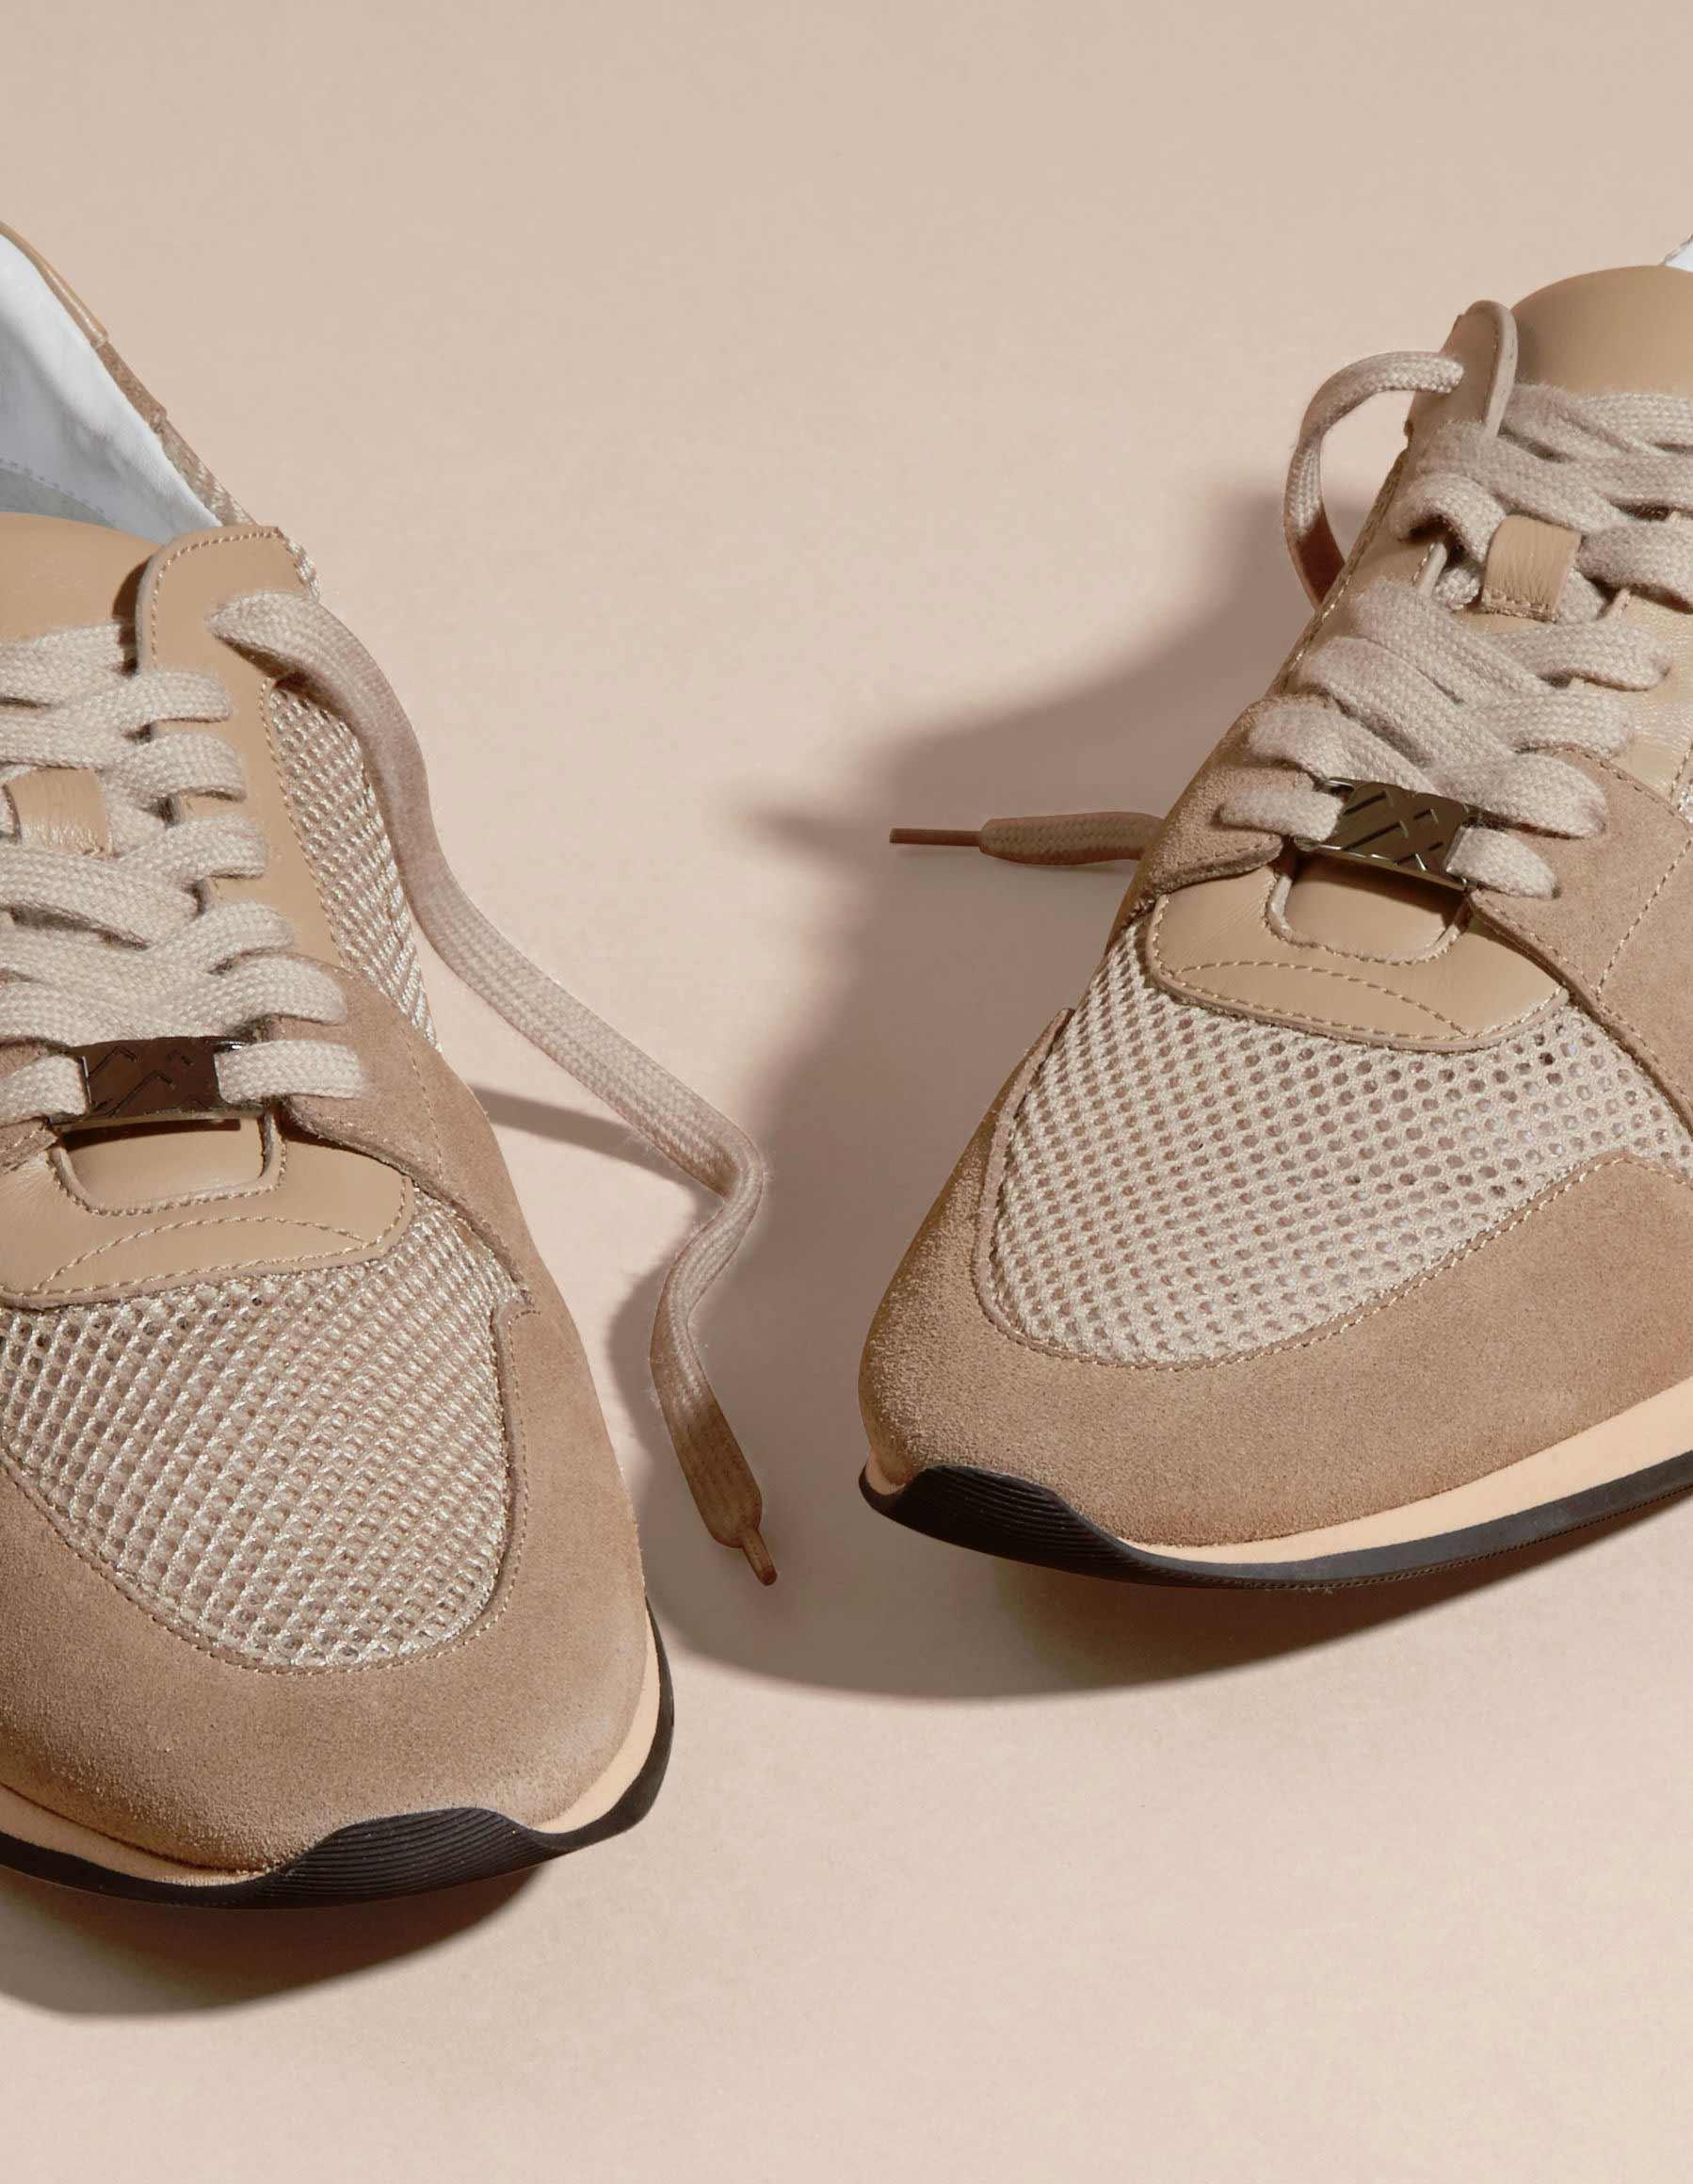 burberry-the-field-sneaker3